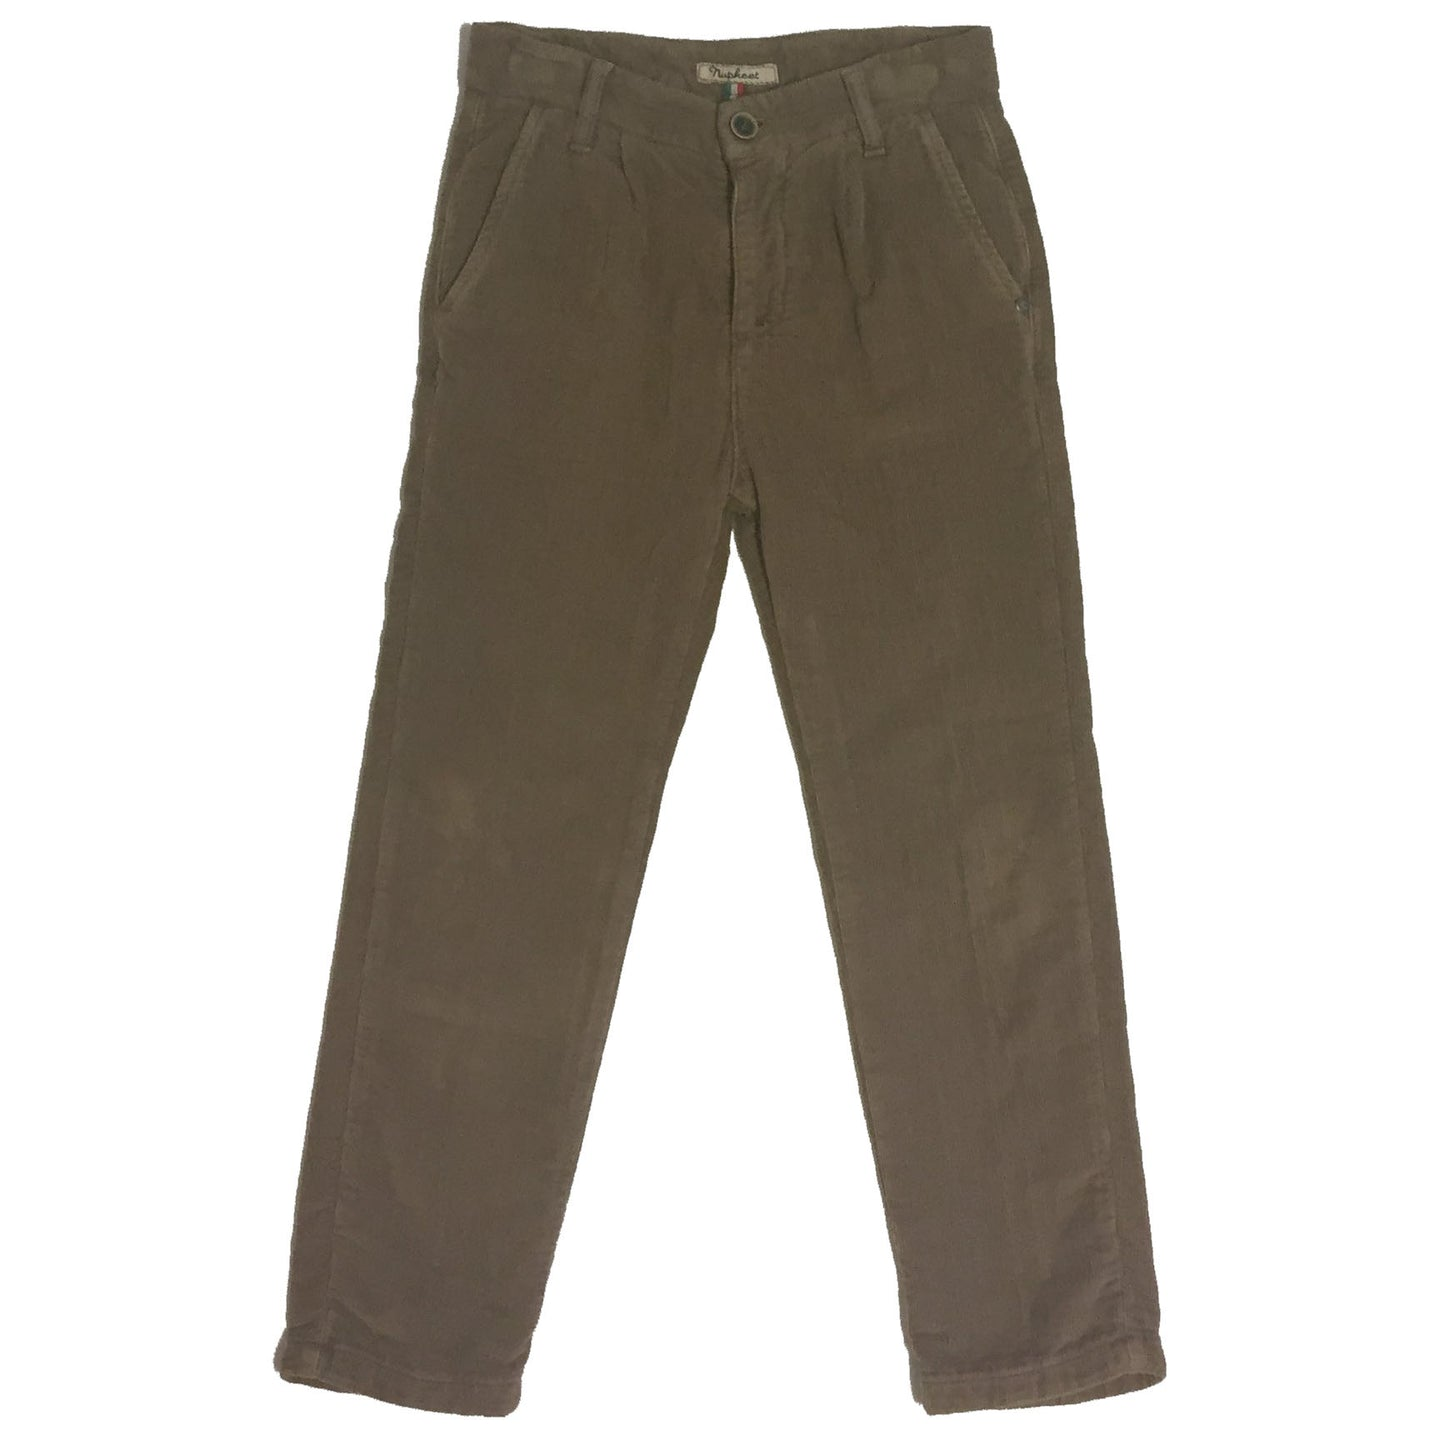 DARK TAN CORDUROY TROUSERS - Sayings Kids